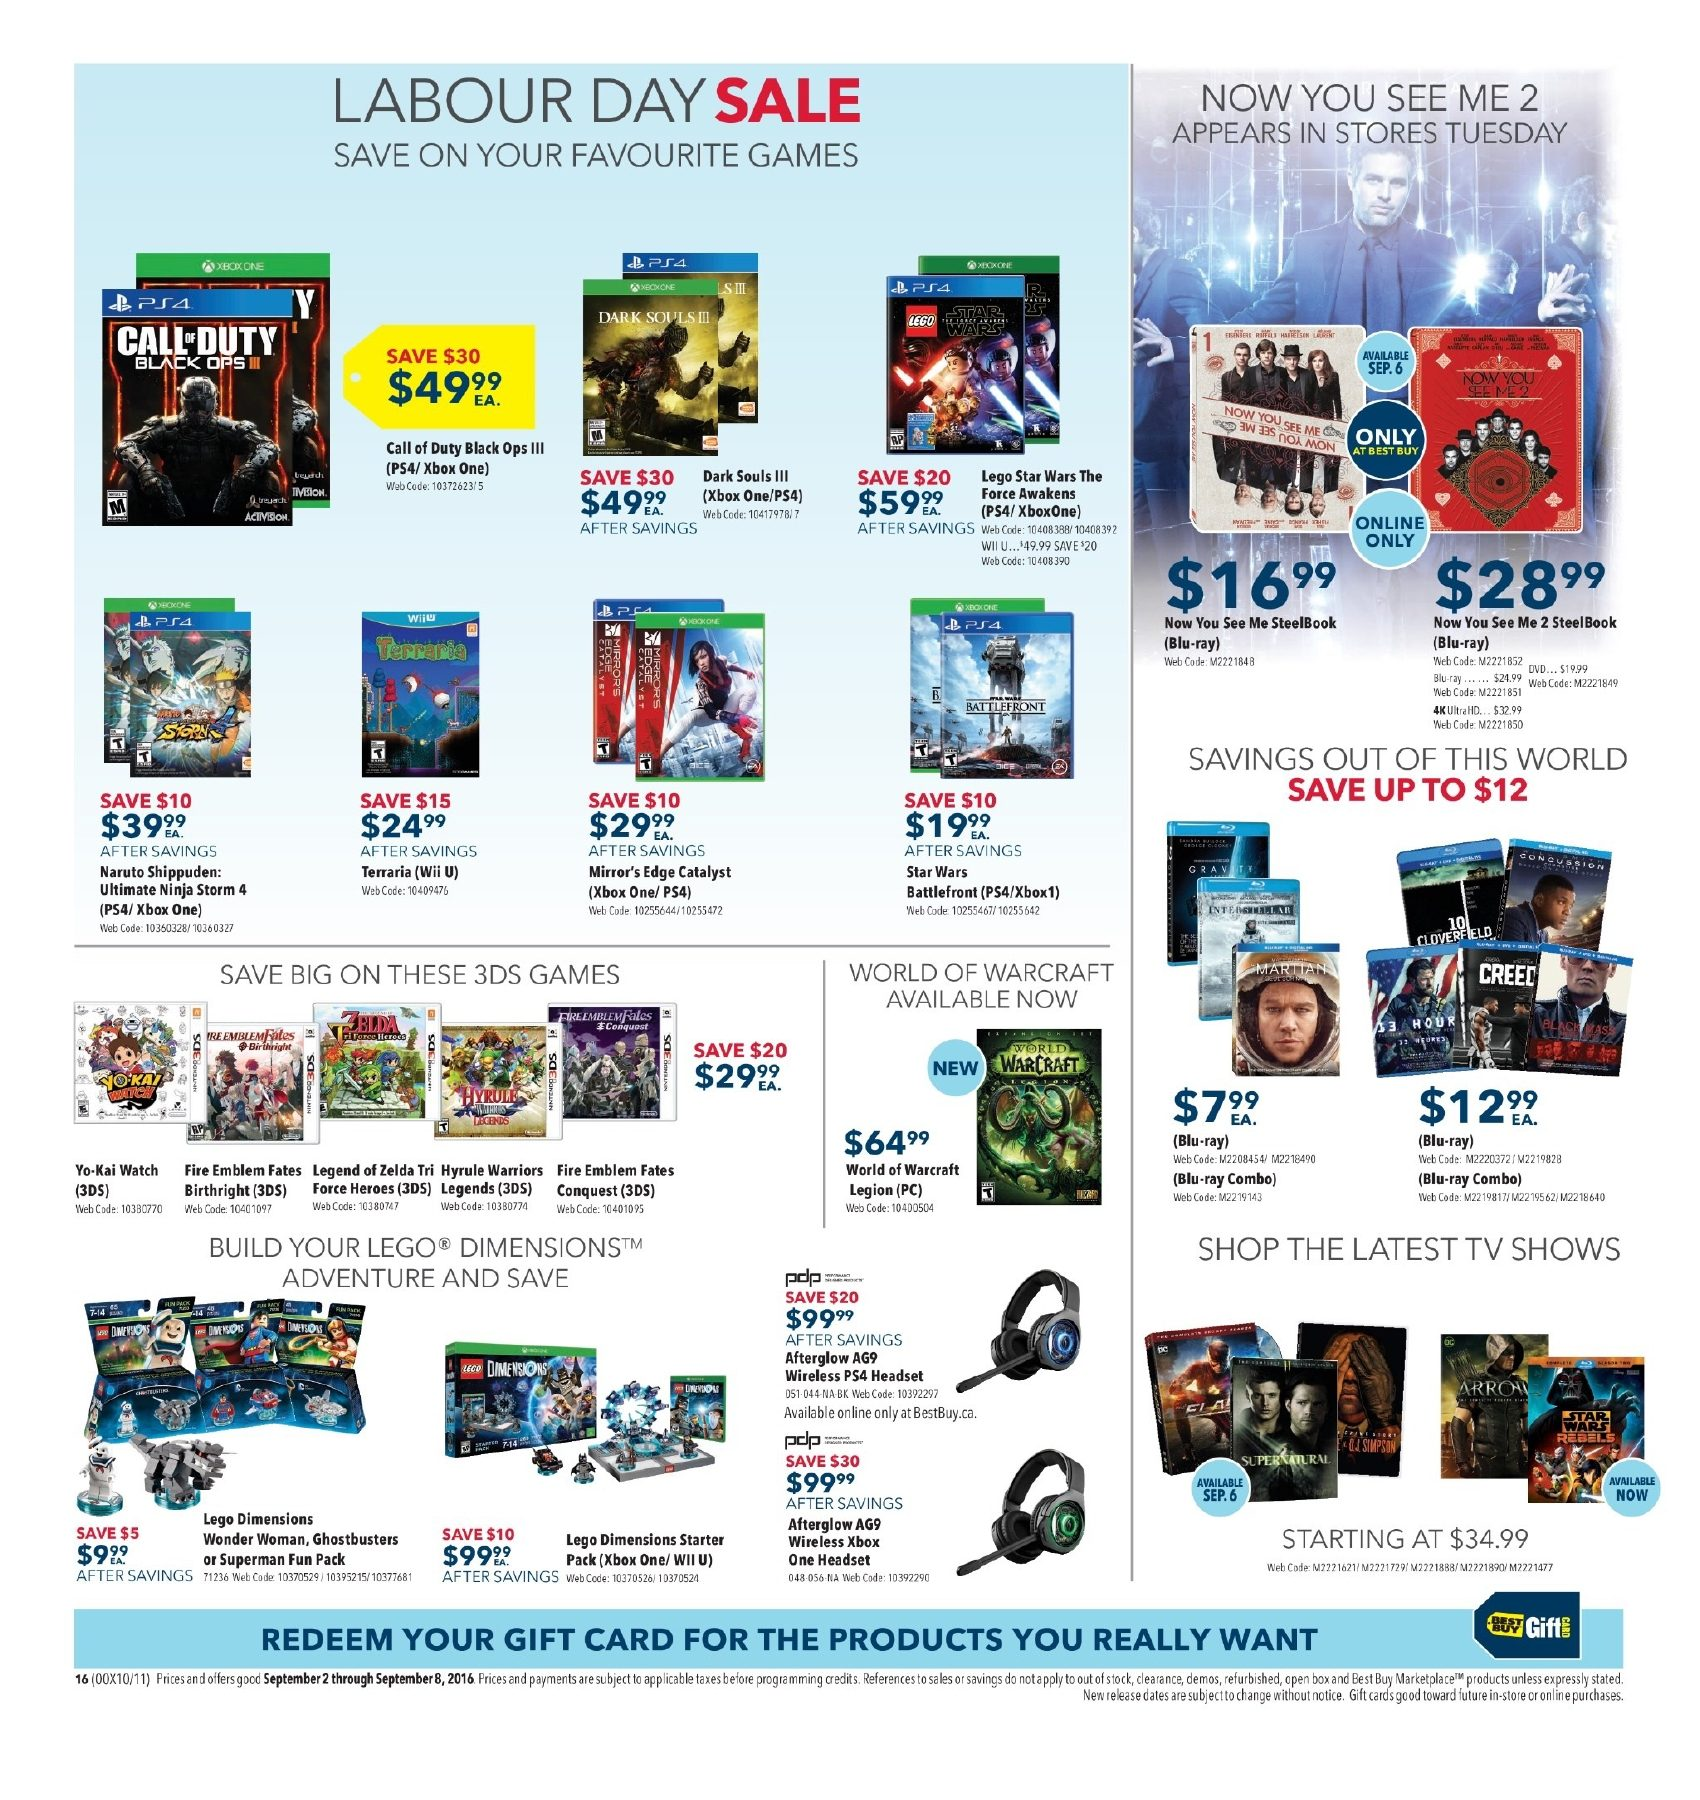 Apc back ups 400 manual ebook coupon codes gallery free ebooks and best buy weekly flyer weekly labour day sale sep 2 8 best buy weekly flyer weekly fandeluxe Choice Image